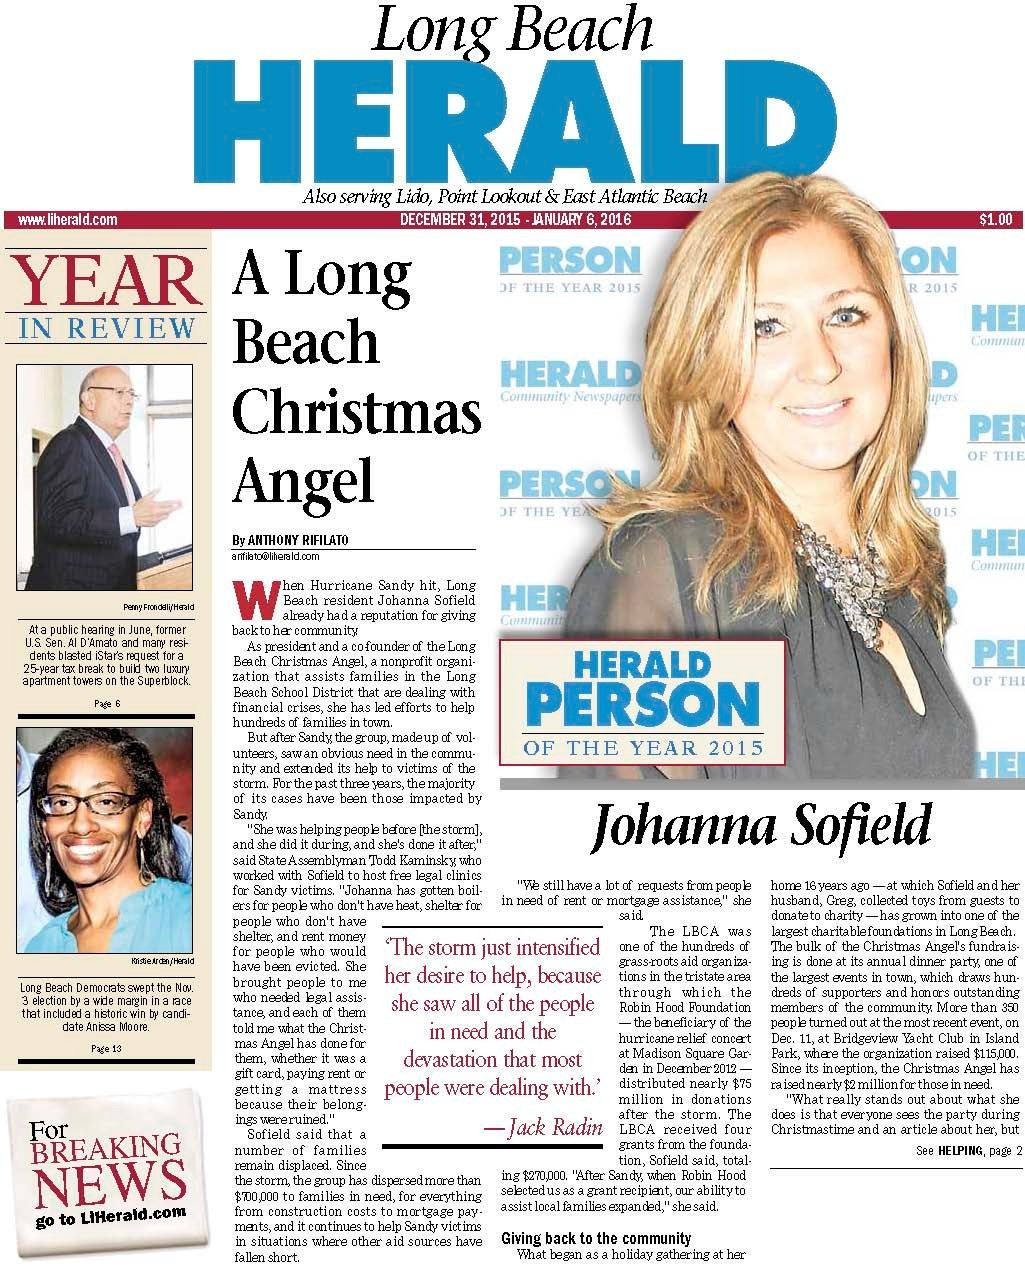 Johanna Sofield, president and co-founder of the nonprofit organization the Long Beach Christmas Angel, is the Herald's 2015 Person of the Year.